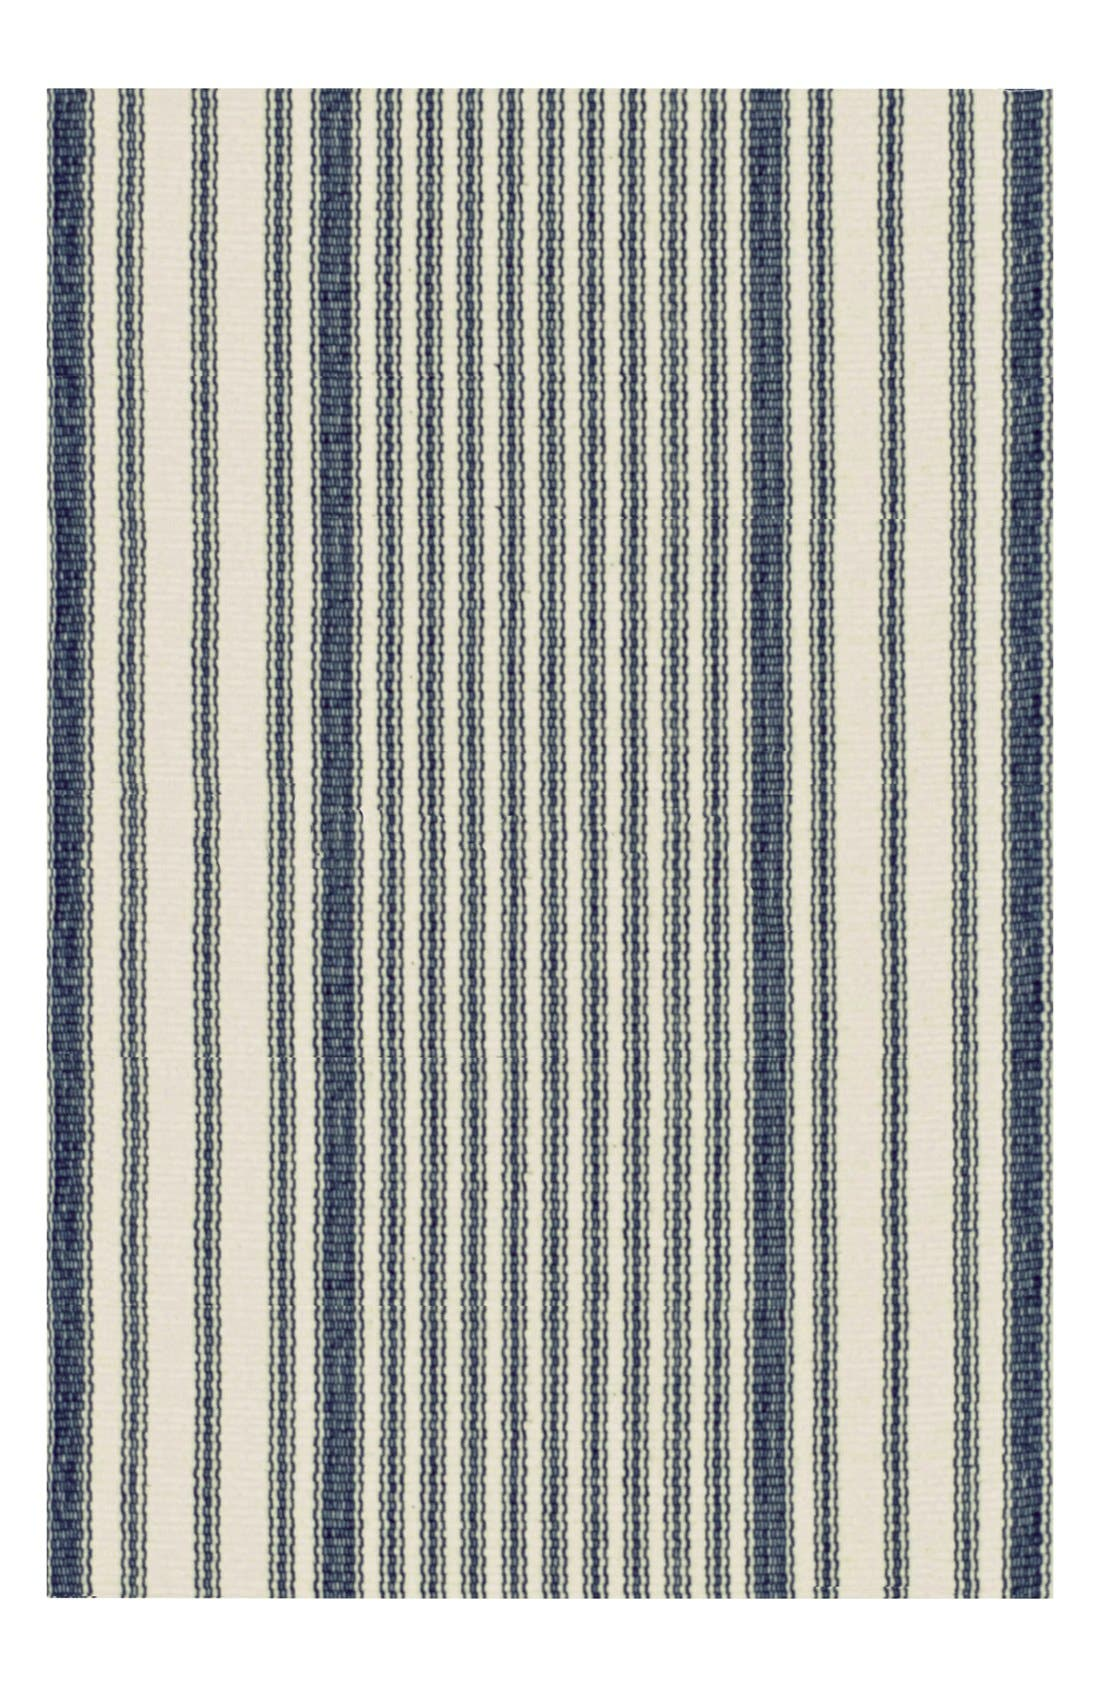 Alternate Image 1 Selected - Dash & Albert 'Mattress Ticking' Rug